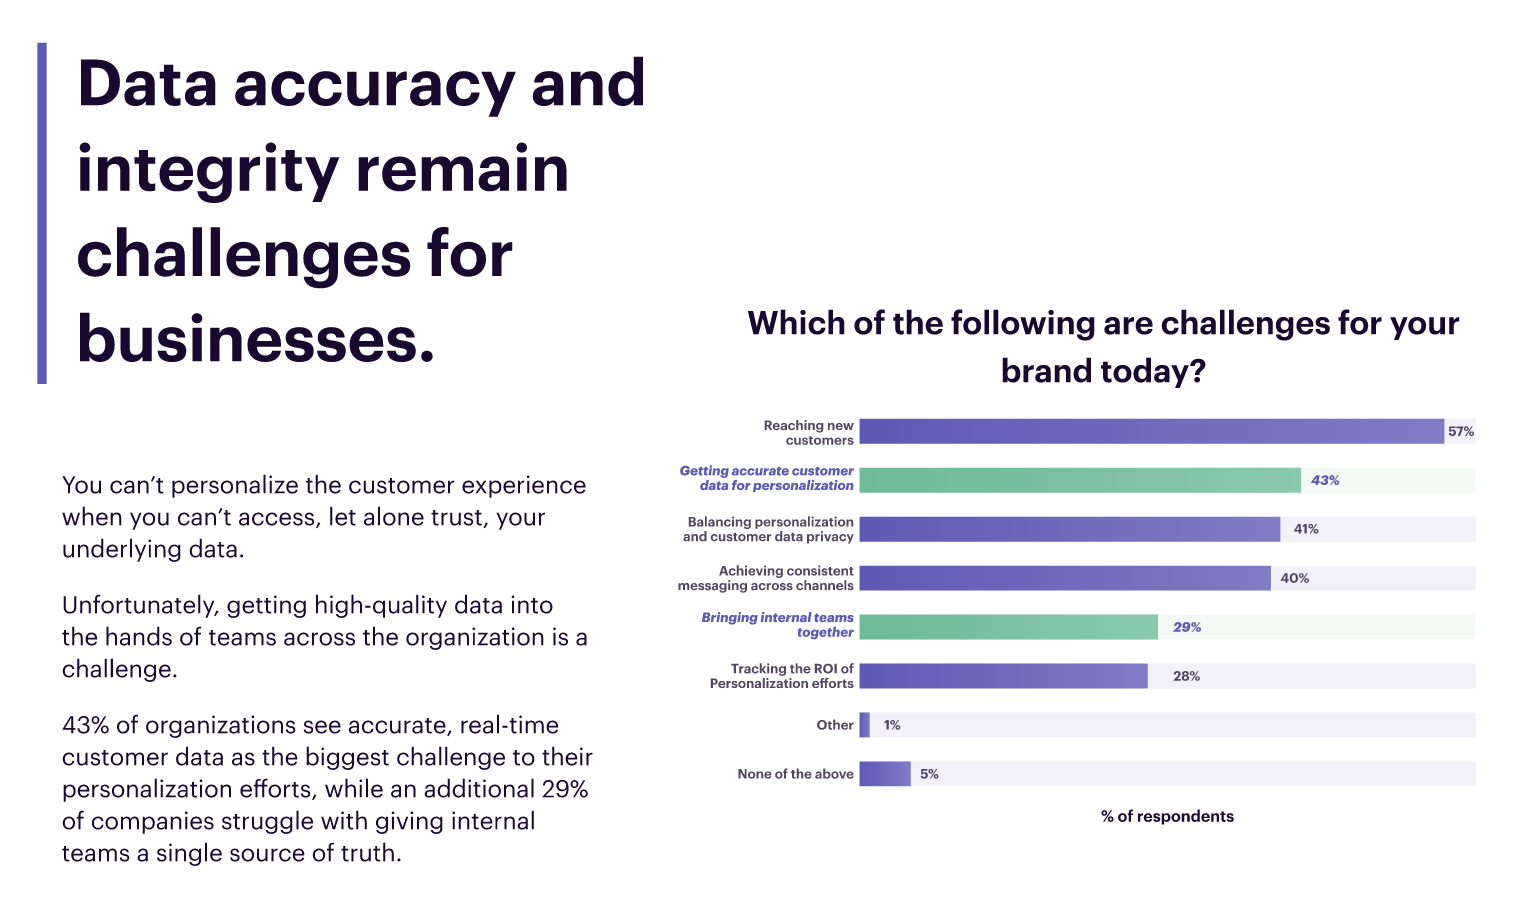 Data accuracy and integrity remain challenges for businesses